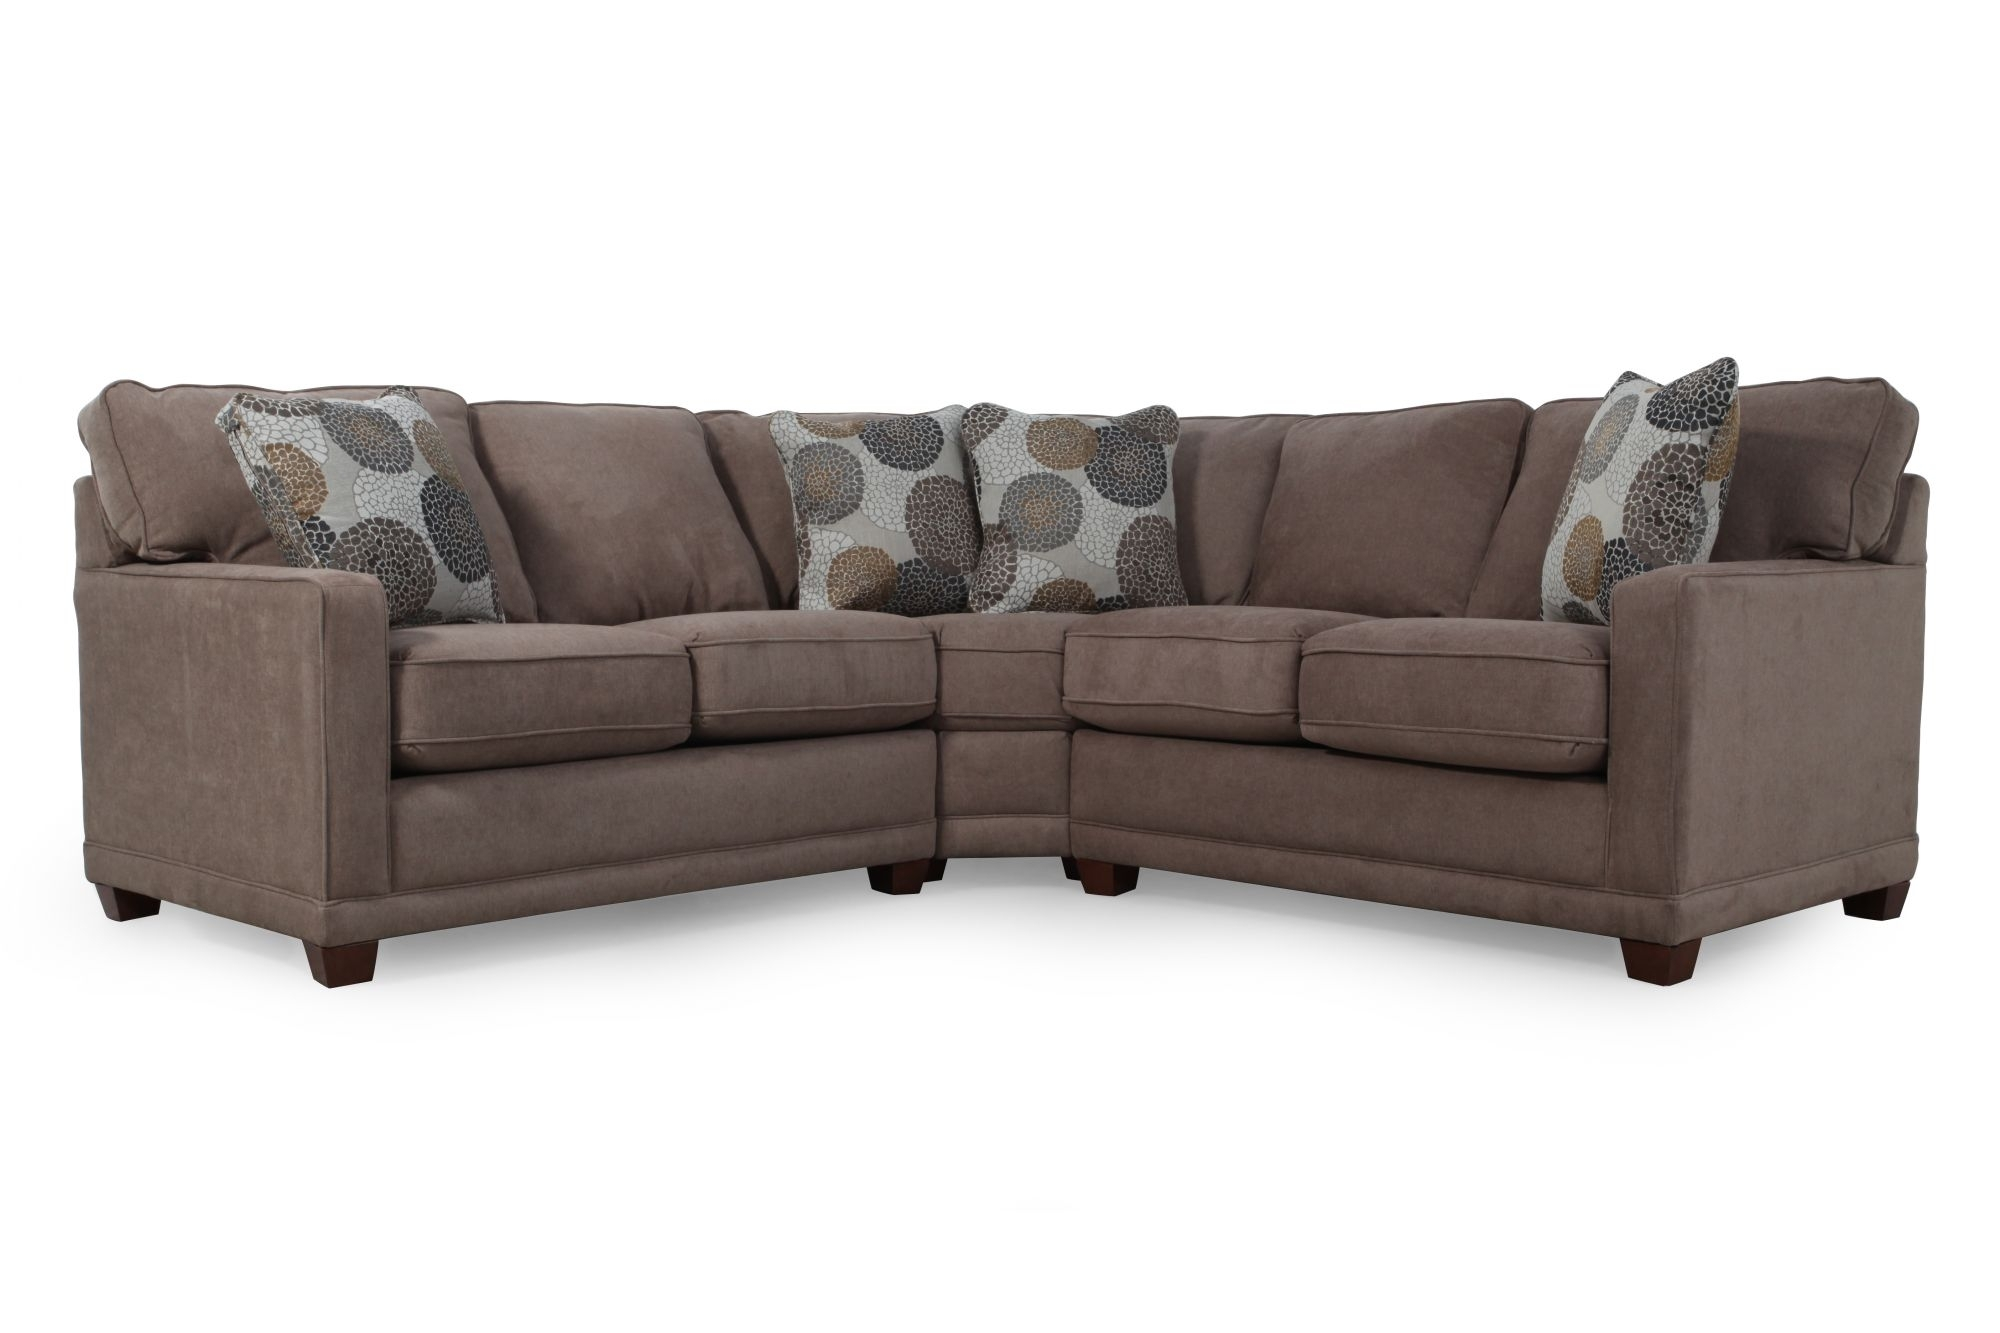 Lazy Boy Sectional Sofa For Sectionals Practical Furniture Exist In Lazy Boy Sectional Sofas (View 6 of 10)